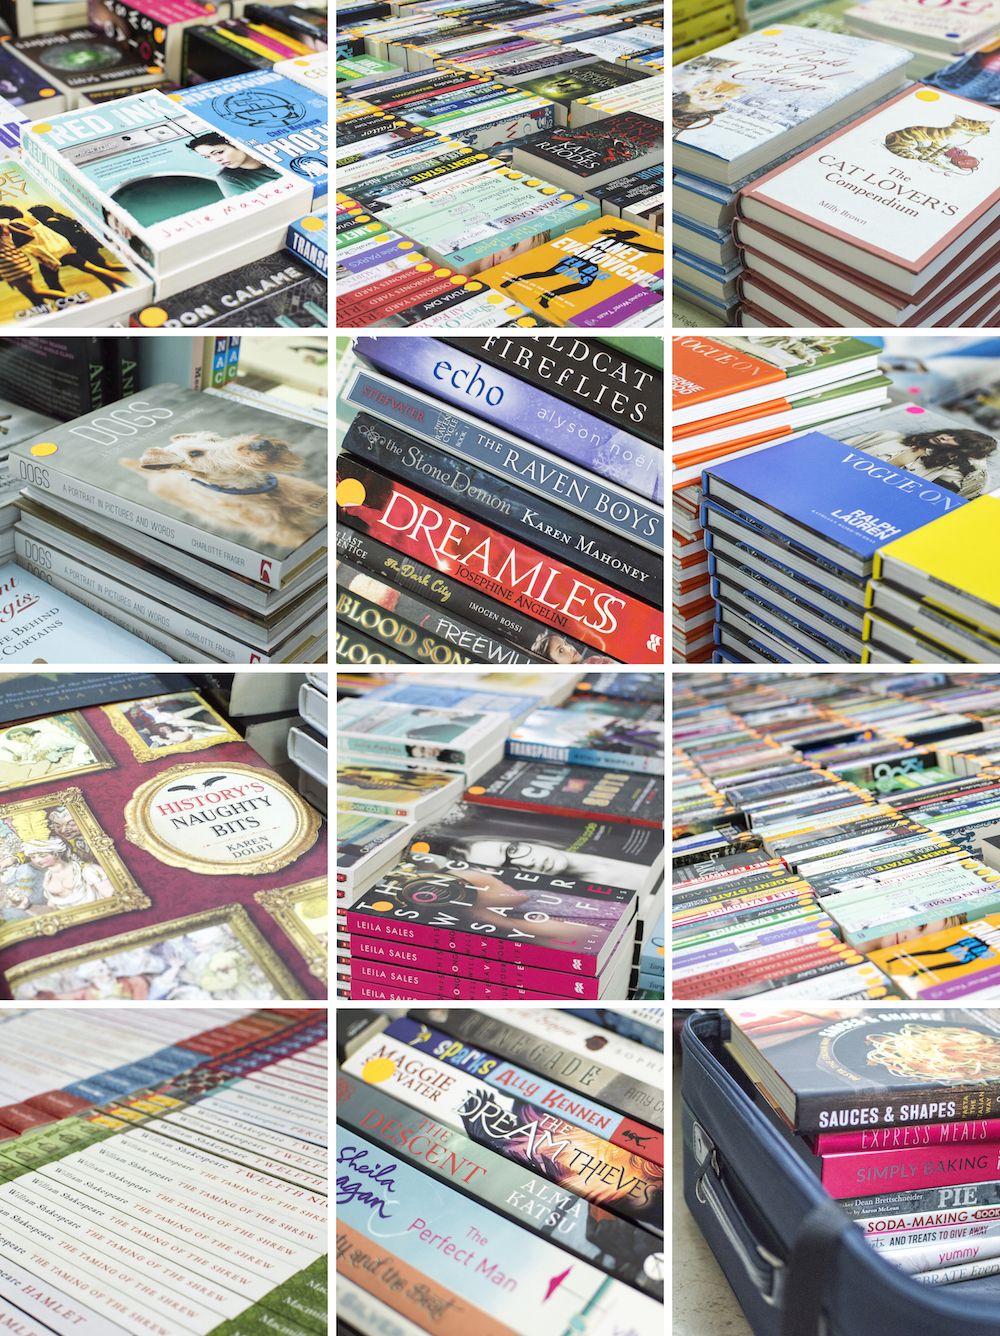 SG Book Deals Warehouse Sale August 2015